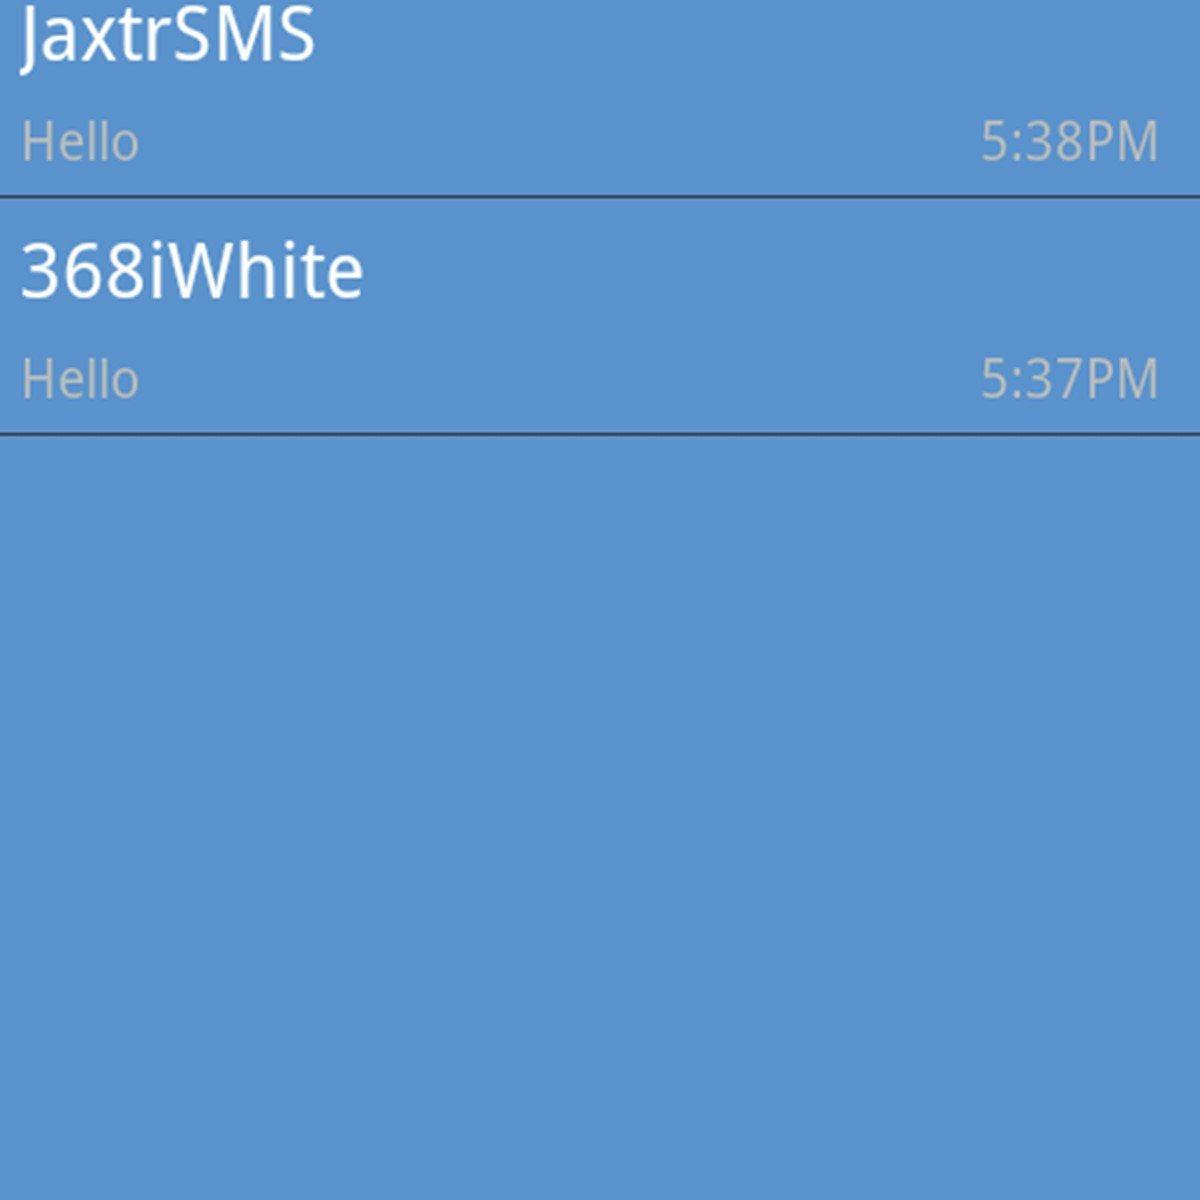 Jaxtrsms sends free text messages to any mobile number in the world.